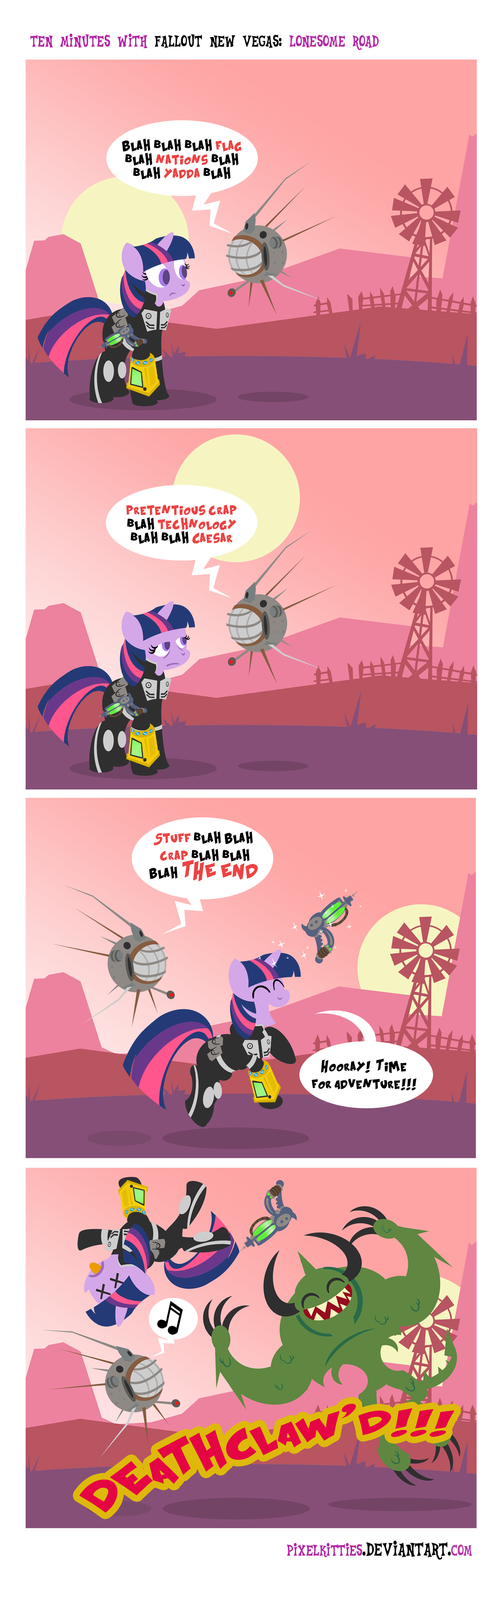 Fallout Lonesome Road Comic by PixelKitties